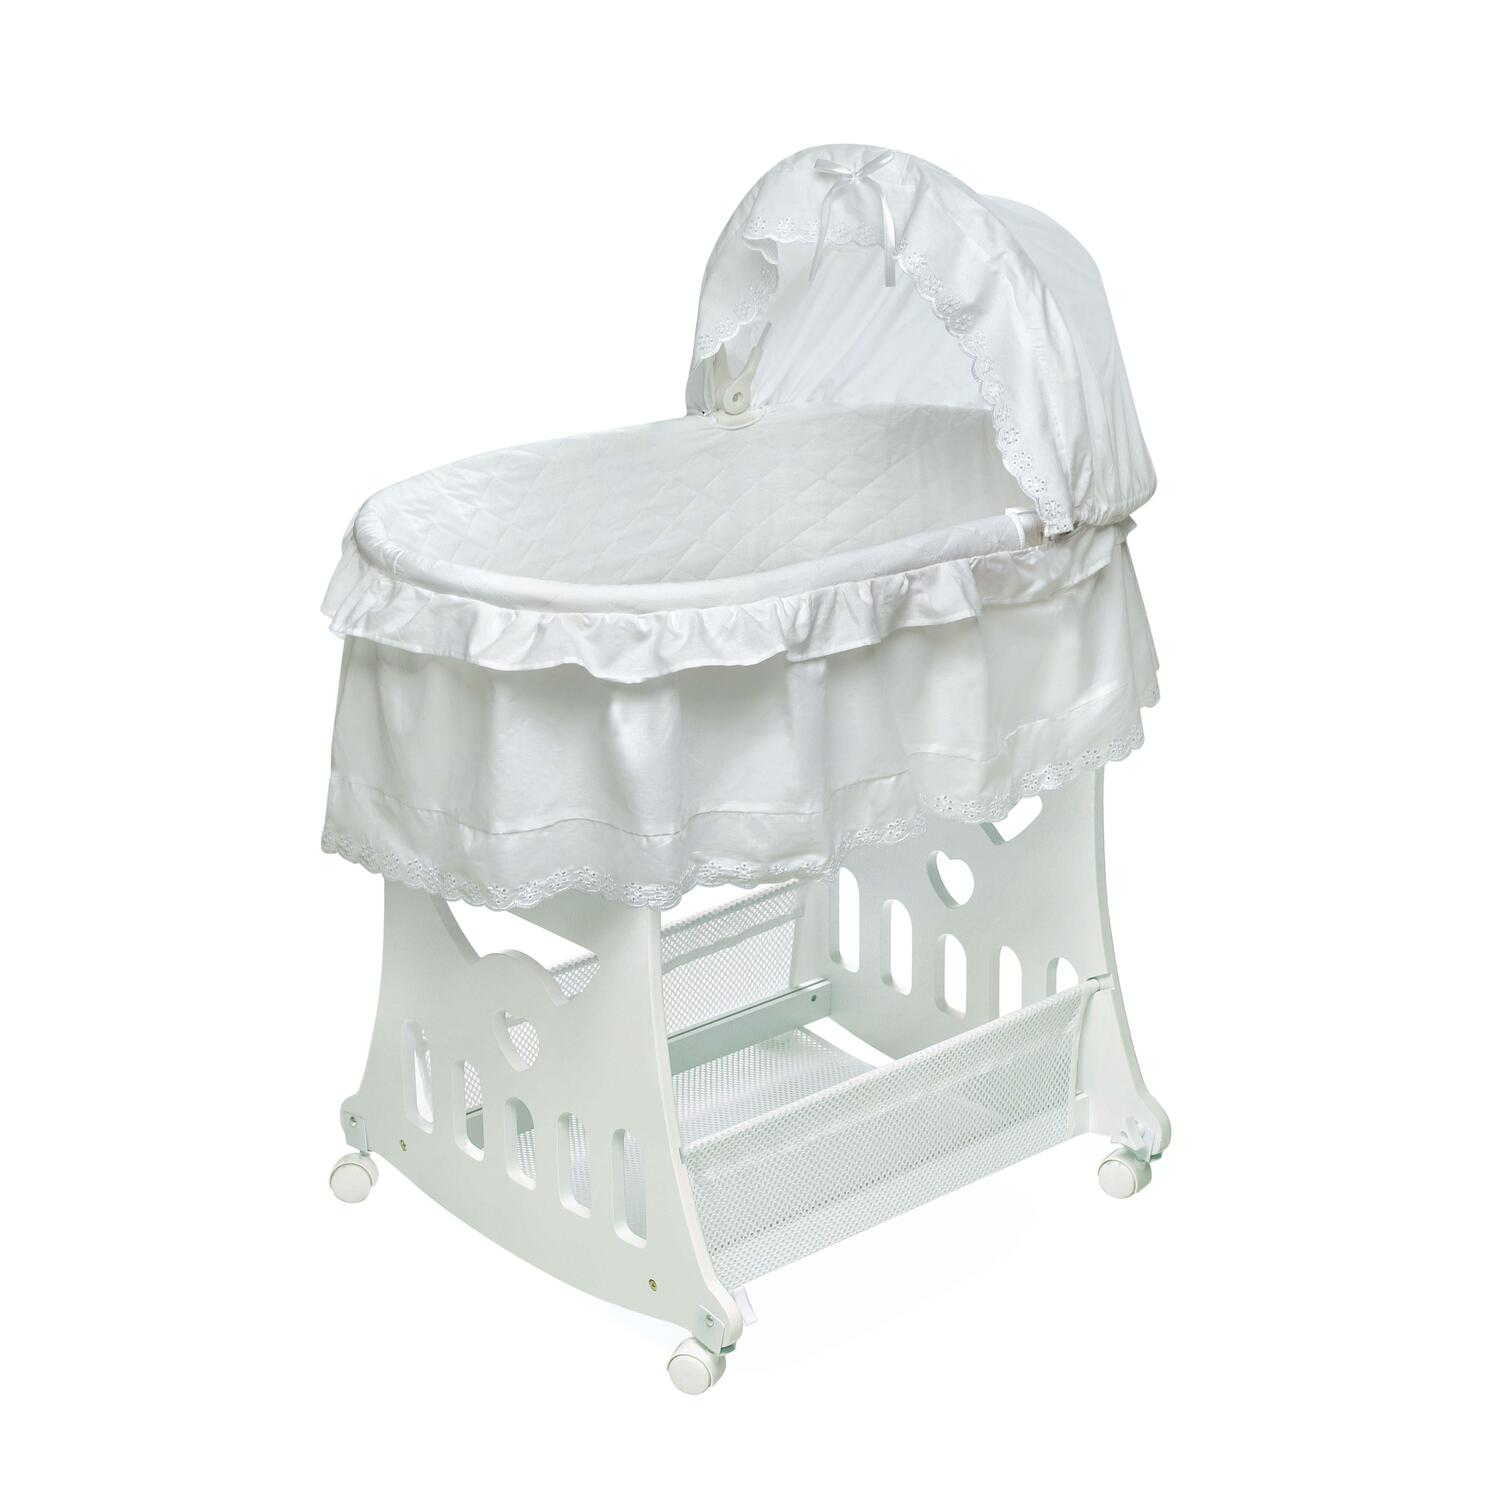 Portable Bassinet U0027N Cradle With Toybox Base   [00630]